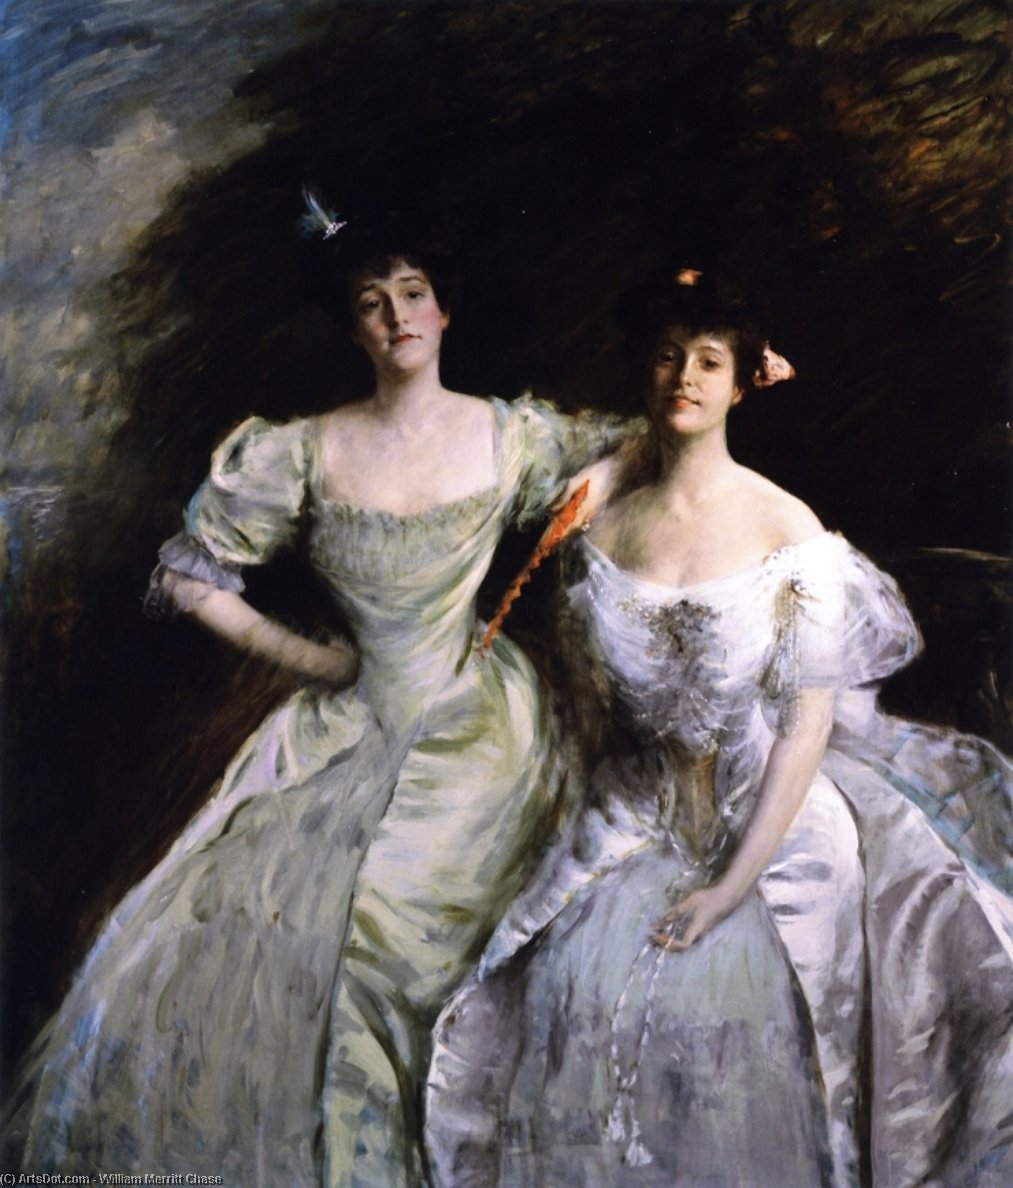 les sœurs ( également connu sous le nom les sœurs - Mme . Sullivan et mrs . oskar livingston , les sœurs - Mme . oskar livingston et mrs . james francis sullivan ), huile sur toile de William Merritt Chase (1849-1916, United States)